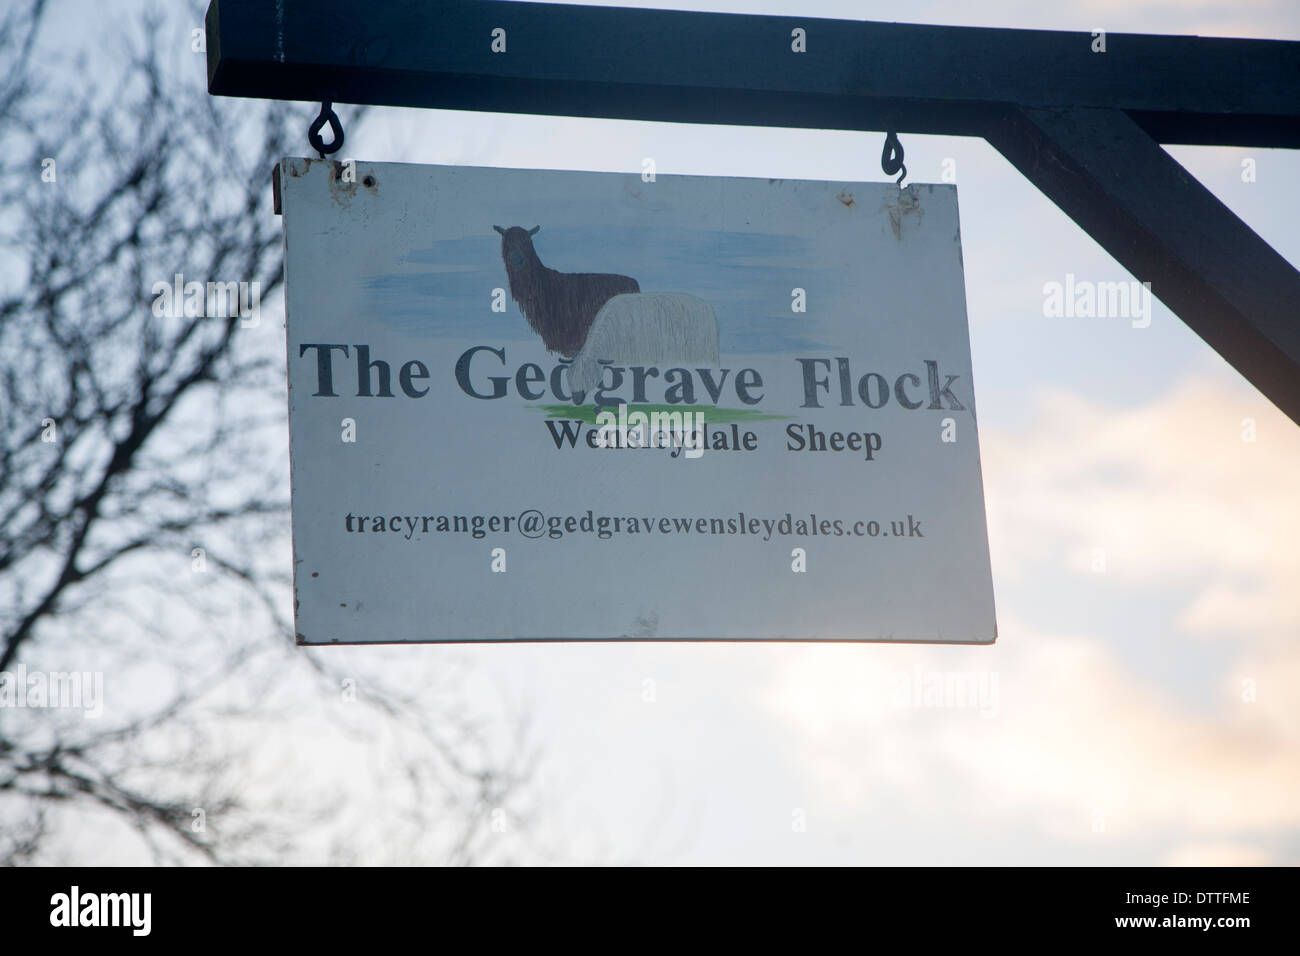 Sign for the Gedgrave Flock of Wensleydale sheep, Suffolk, England Stock Photo